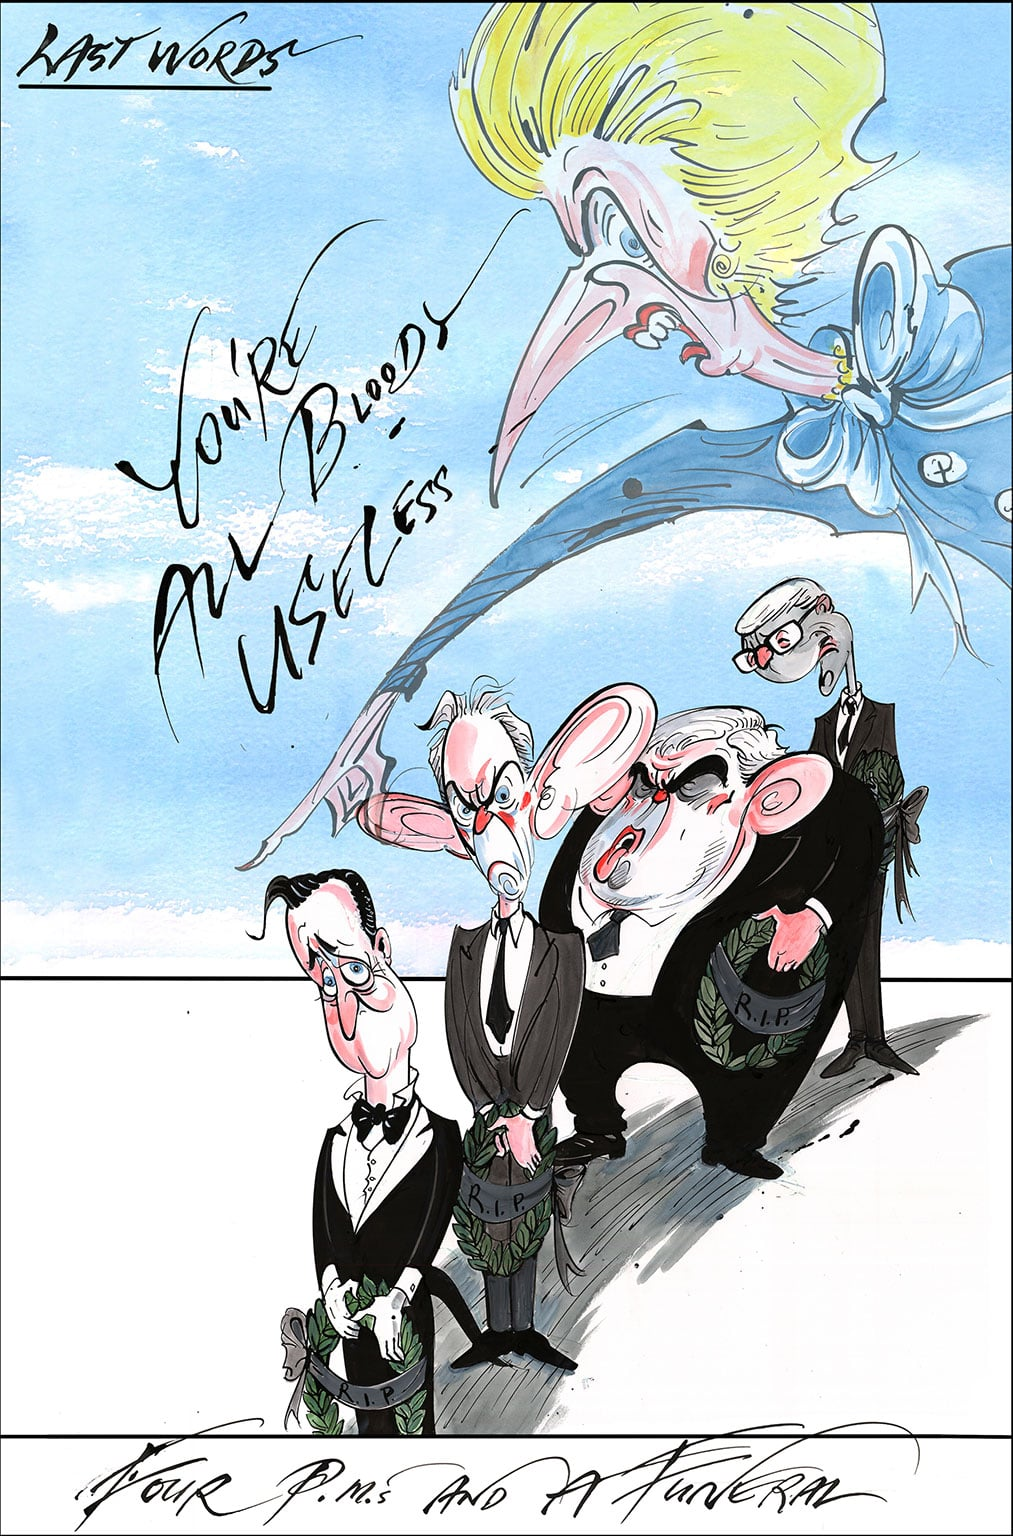 Gerald Scarfe, Thatcher - Four PMs and a Funderl